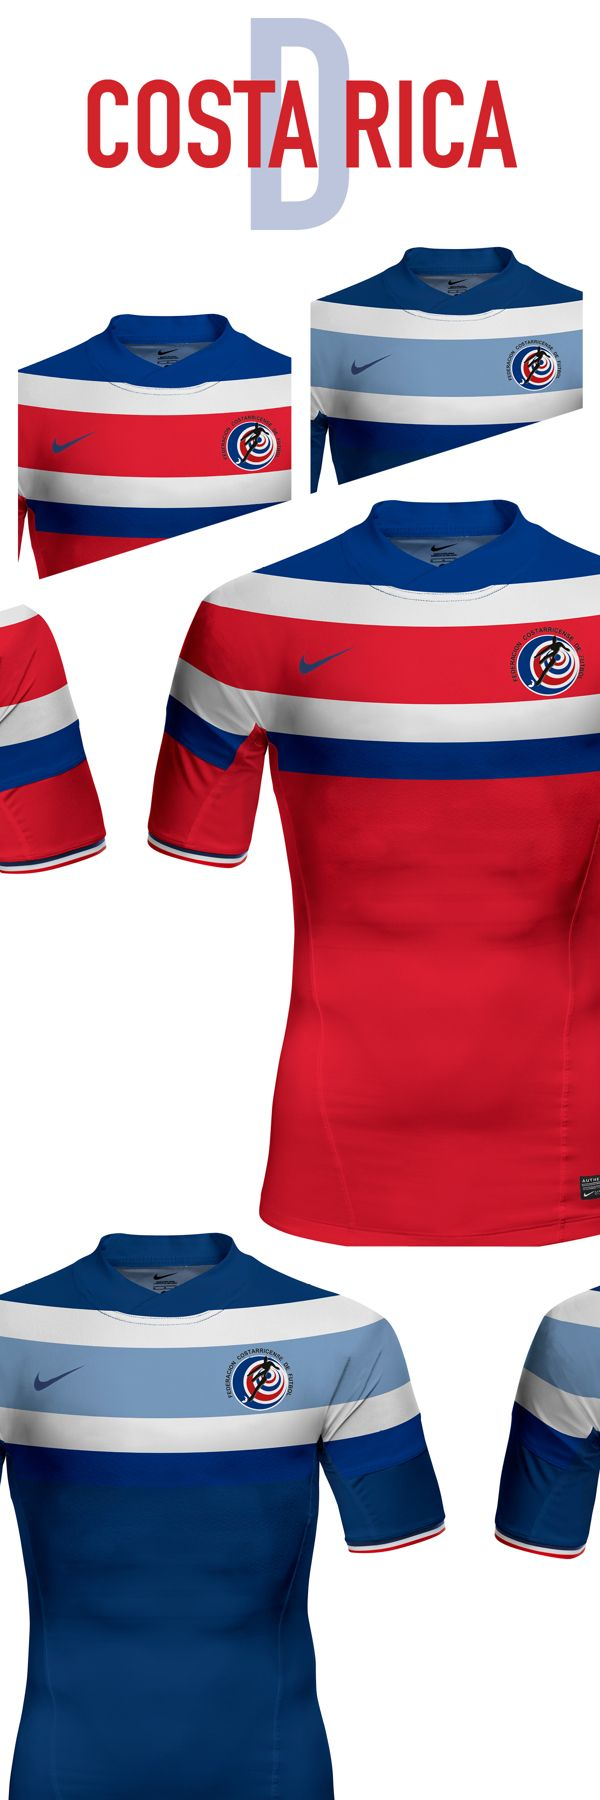 Costa Rica. World Cup. Group D. Concepts on Behance